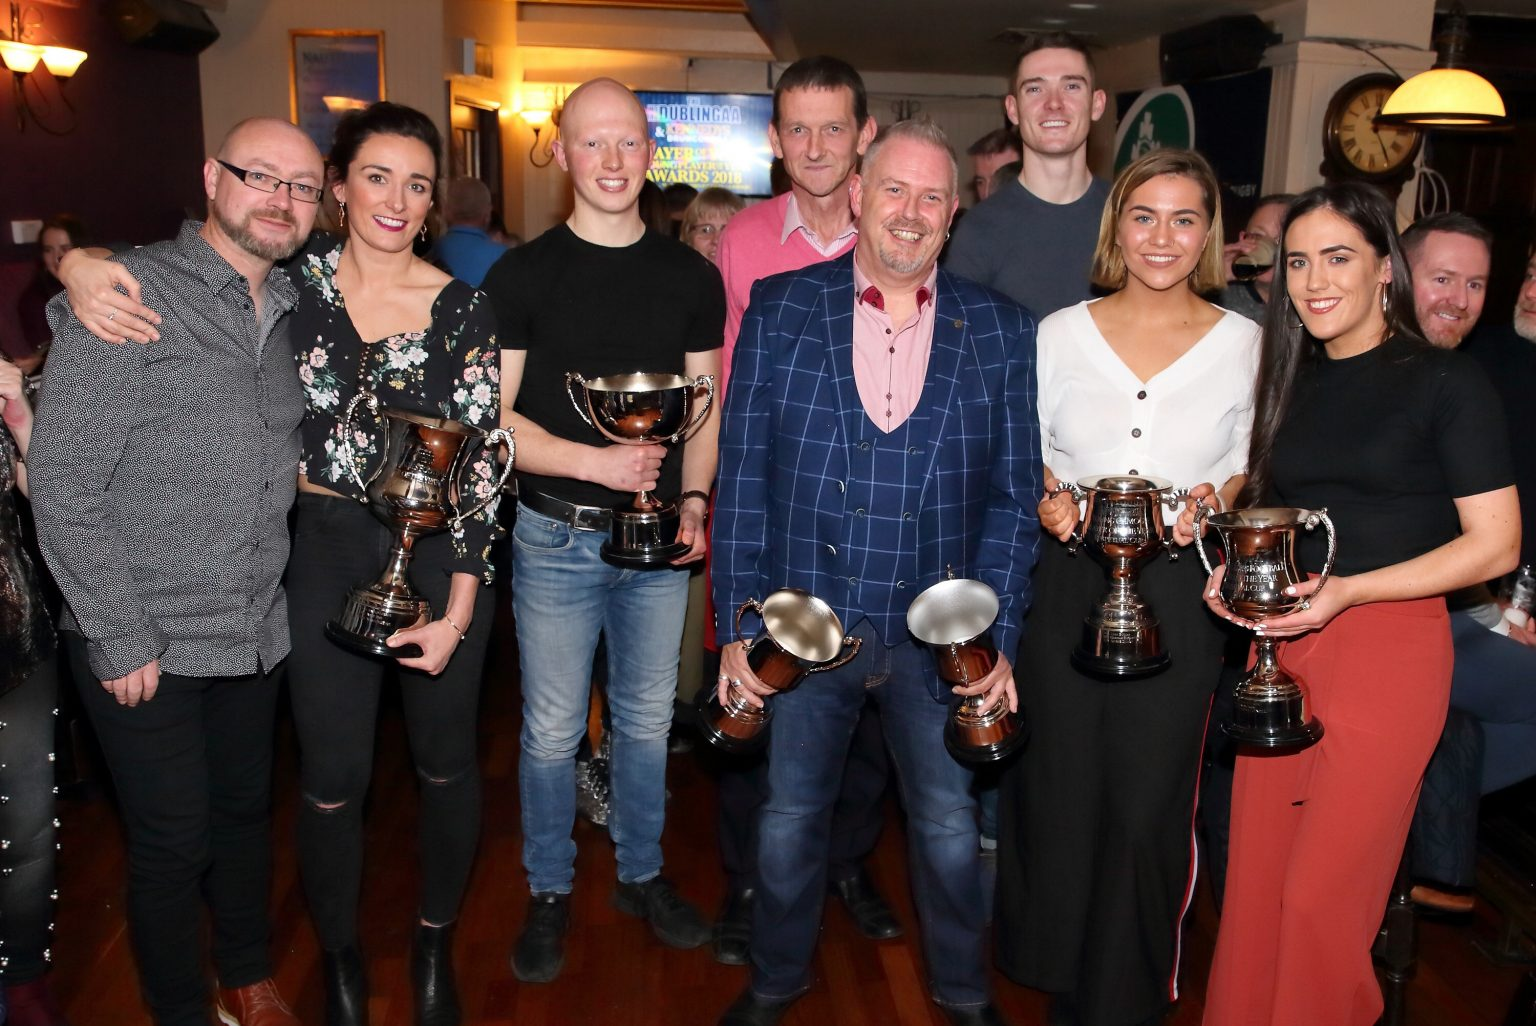 Some of the We Are Dublin GAA/Kennedy's Drumcondra Award Winners (From Left To Right) Noel Murphy (We Are Dublin GAA), Niamh McEvoy, Fergal Whitely, Martin Tynan (Kennedy's Drumcondra), Nigel McCarthy (We Are Dublin GAA), Brian Fenton, Aoibhe Dillon and Hannah O'Neill